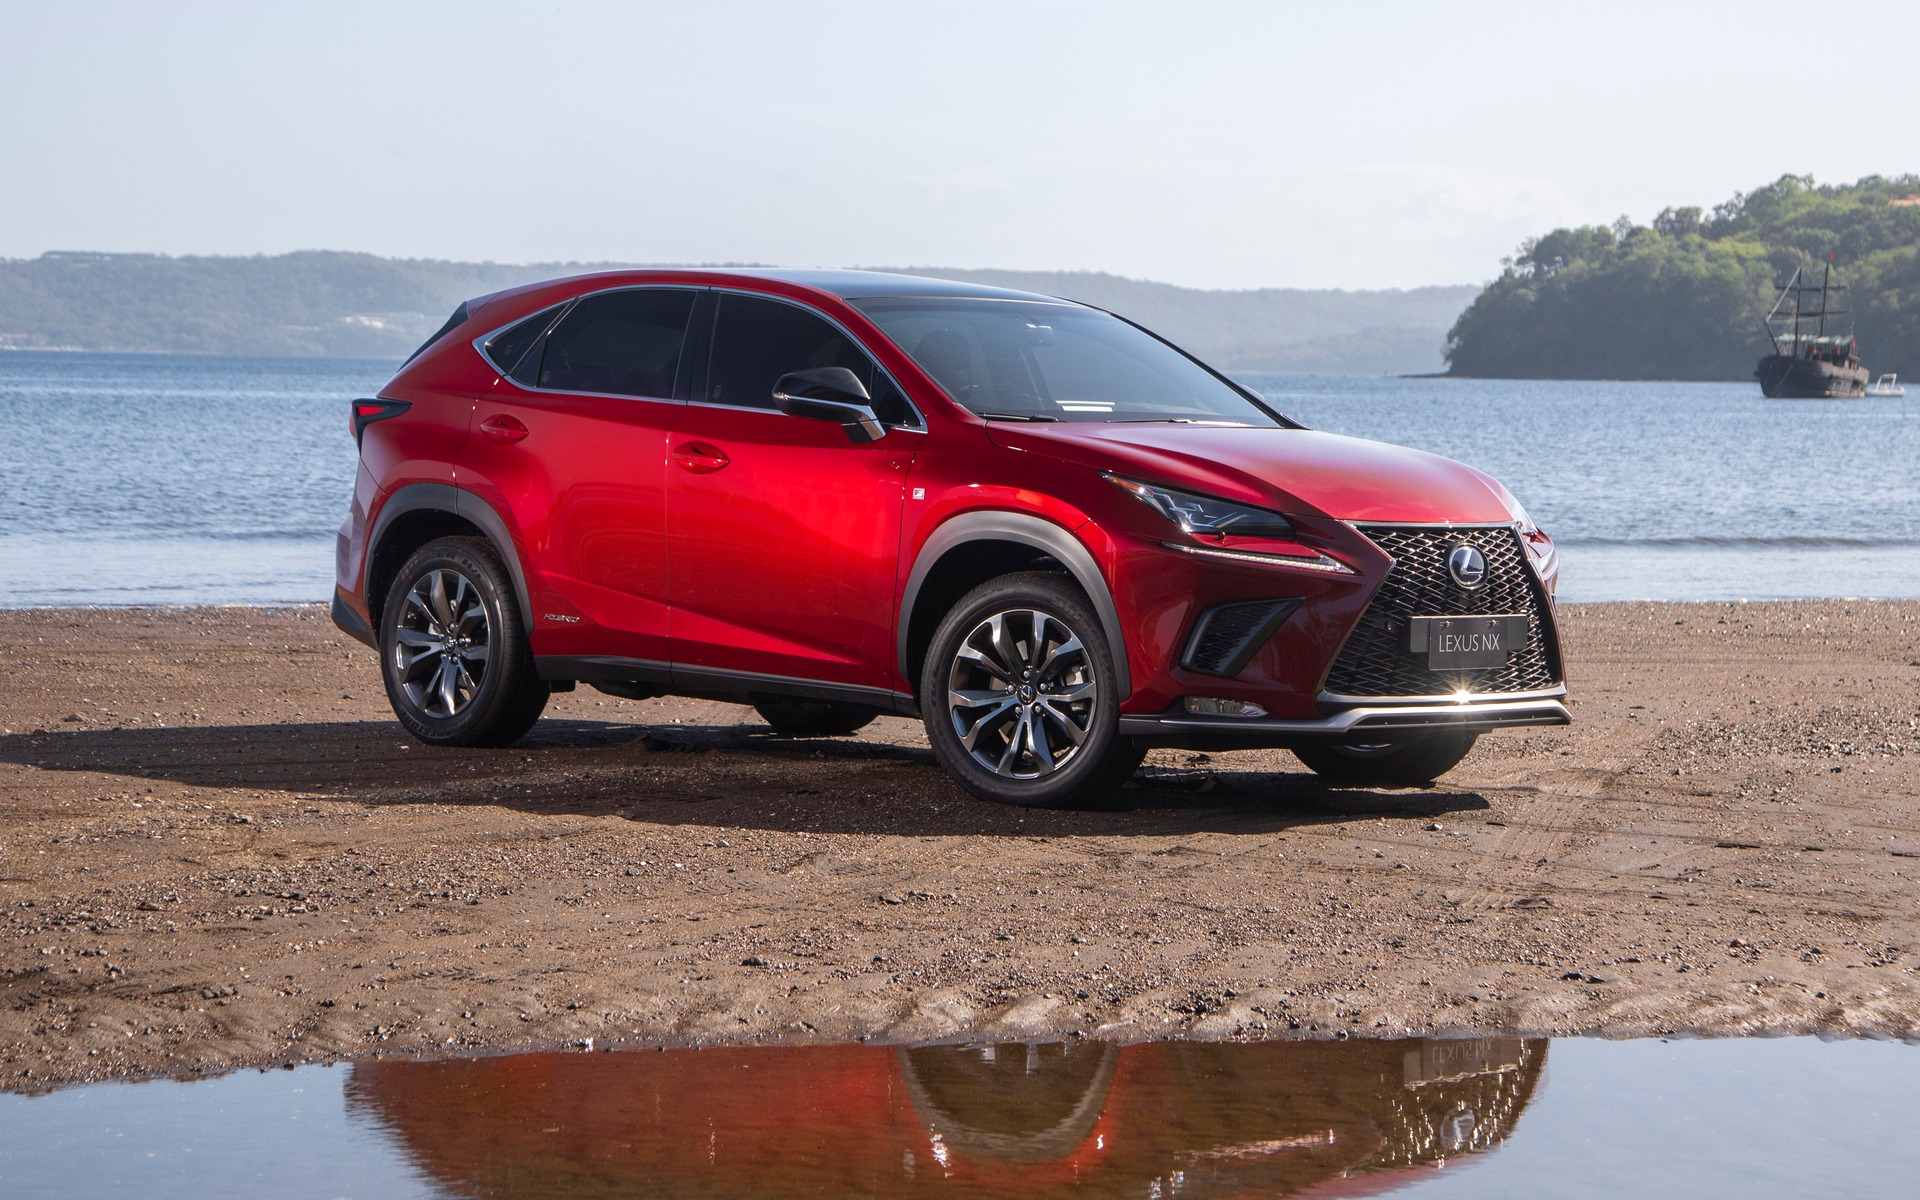 Lexus Nx Hybrid Price >> 2020 Lexus Nx Cuts Hybrid Price Significantly The Car Guide